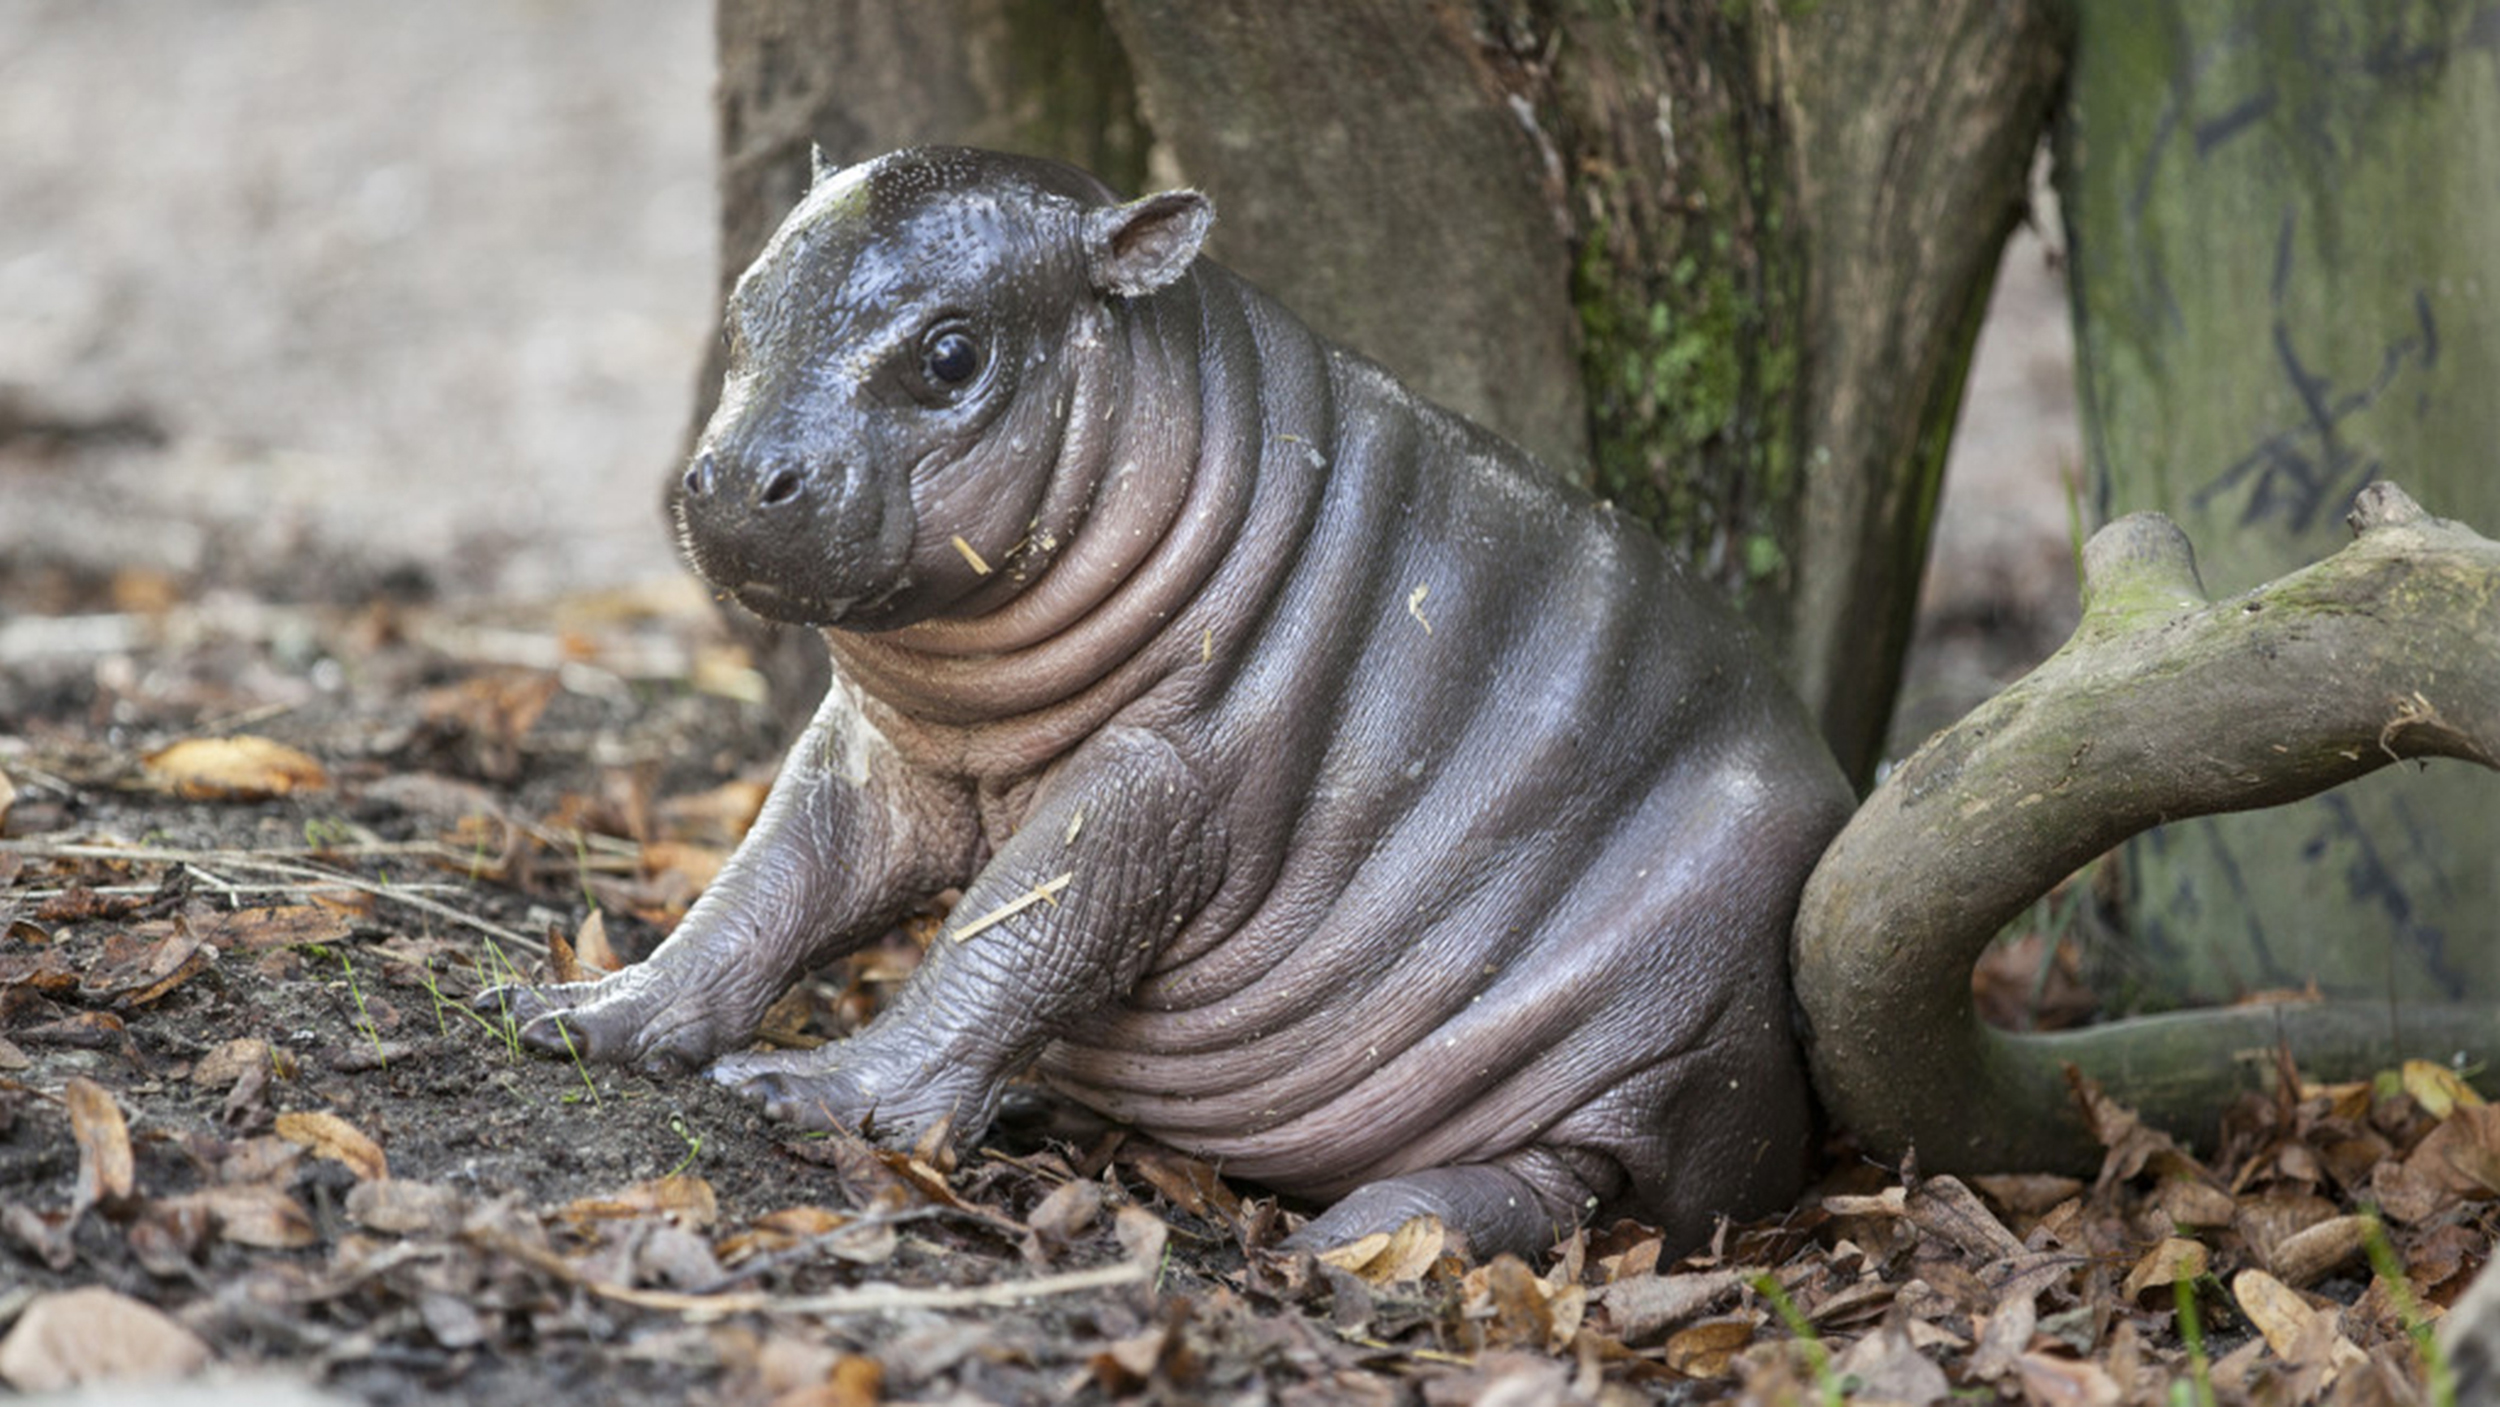 See Why This Adorable Baby Hippo Has Been Nicknamed